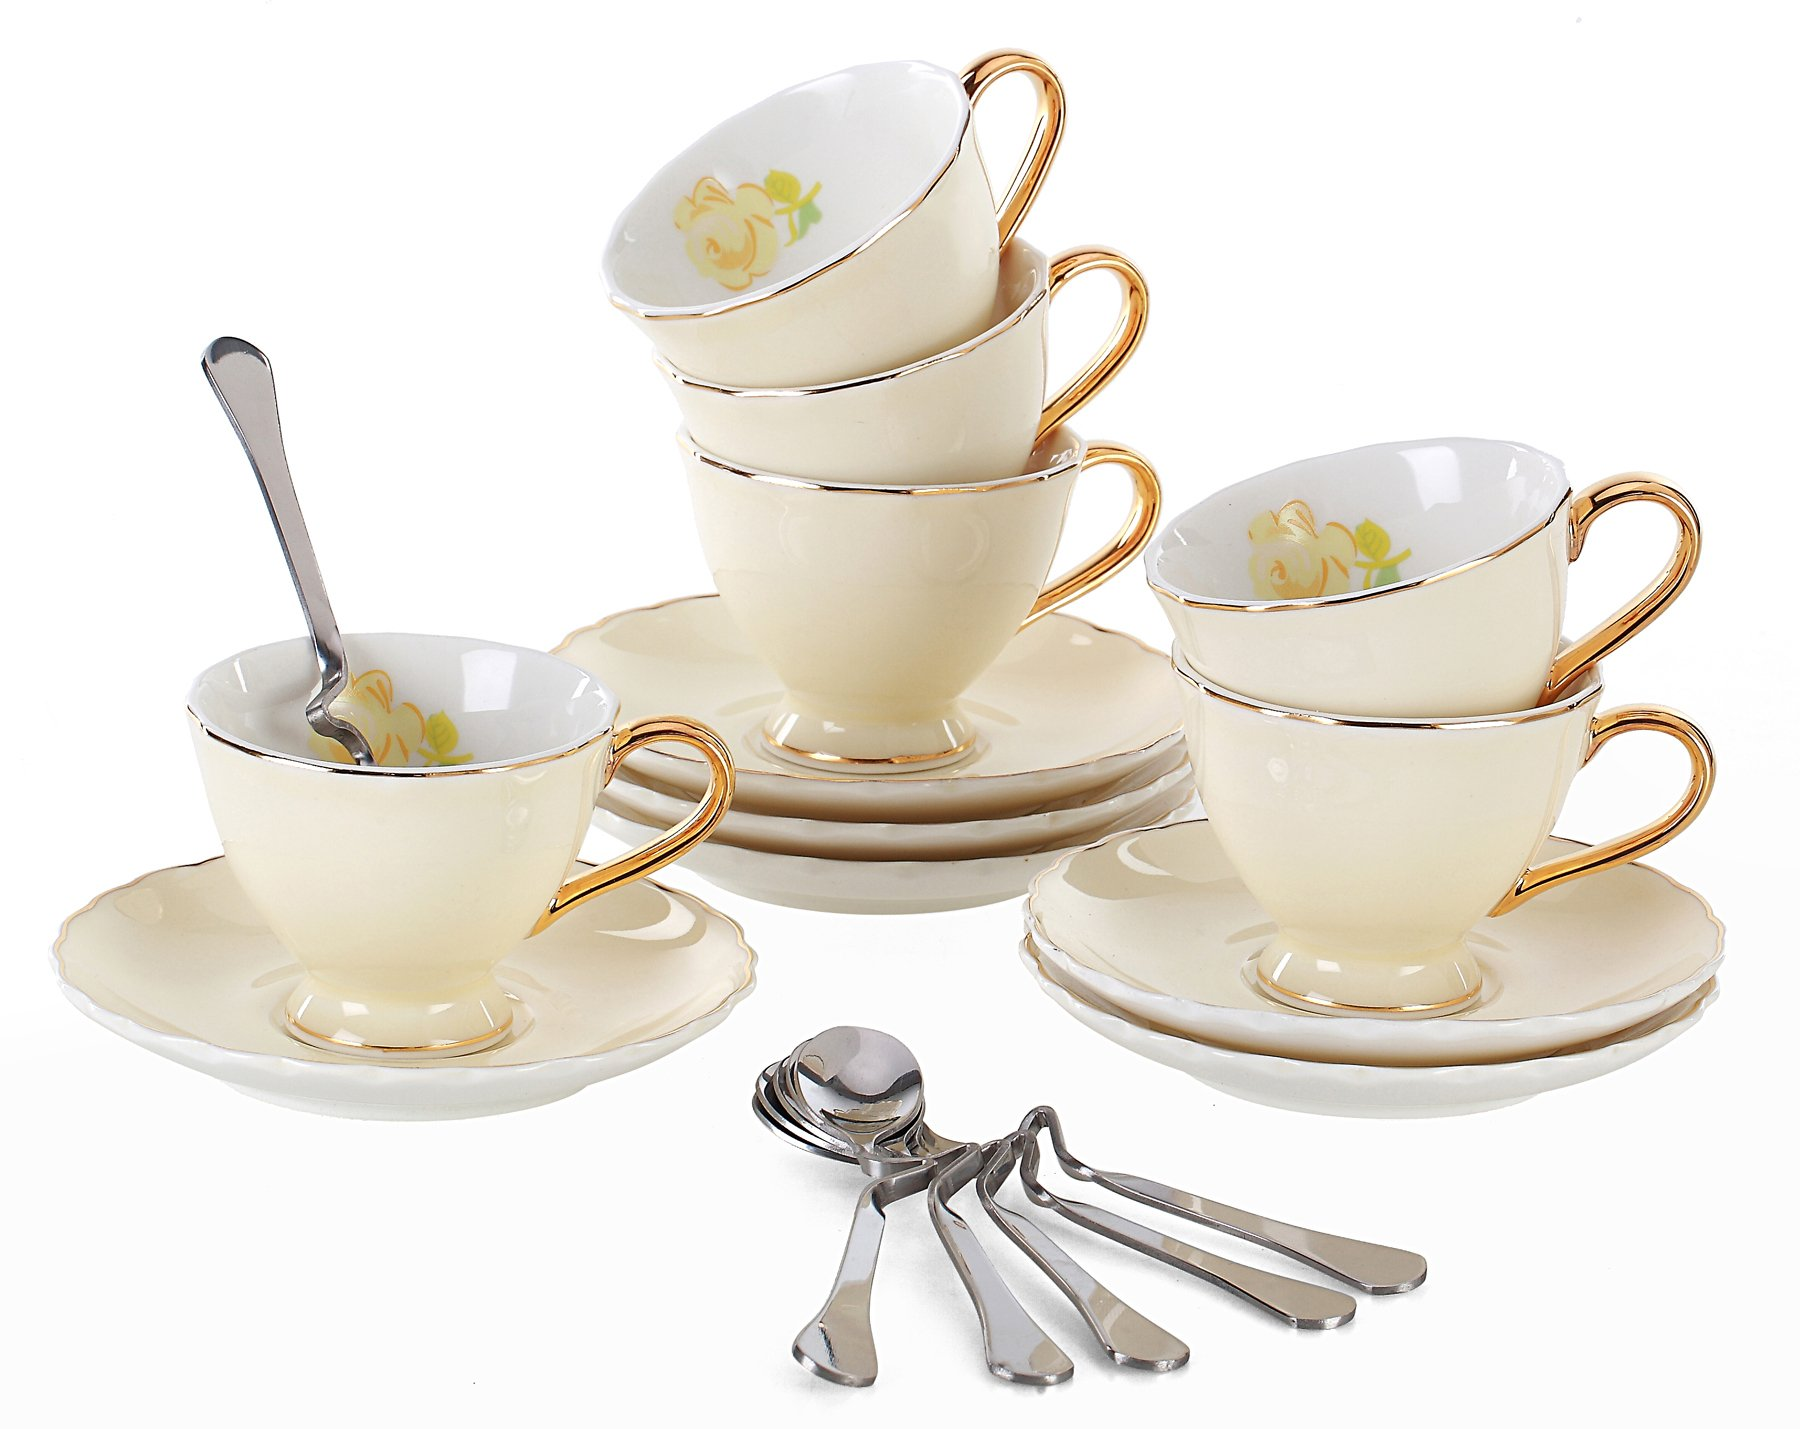 Jusalpha Fine China Tea Cup and Saucer Coffee Cup Set with Saucer and Spoon FD-TCS02 (7 OZ, Set of 6, Yellow)